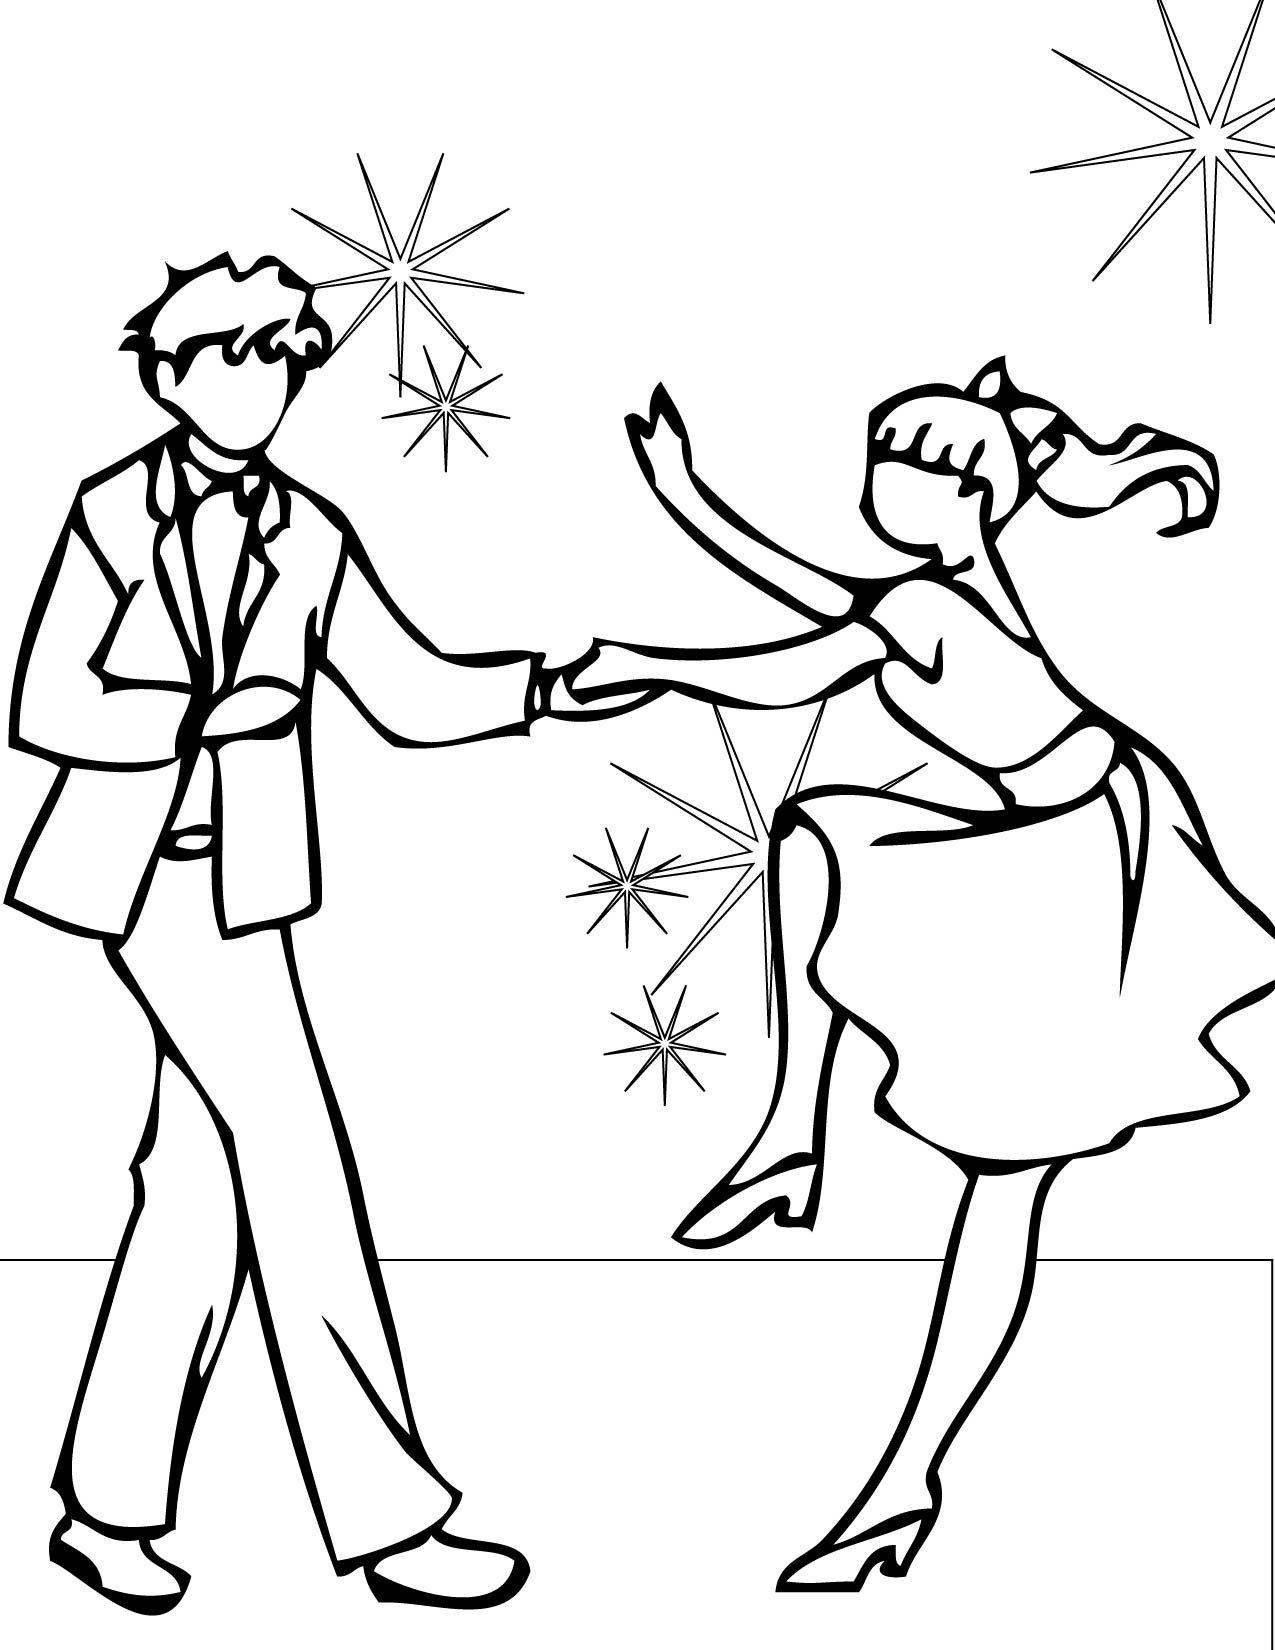 Swing Coloring Page Handipoints